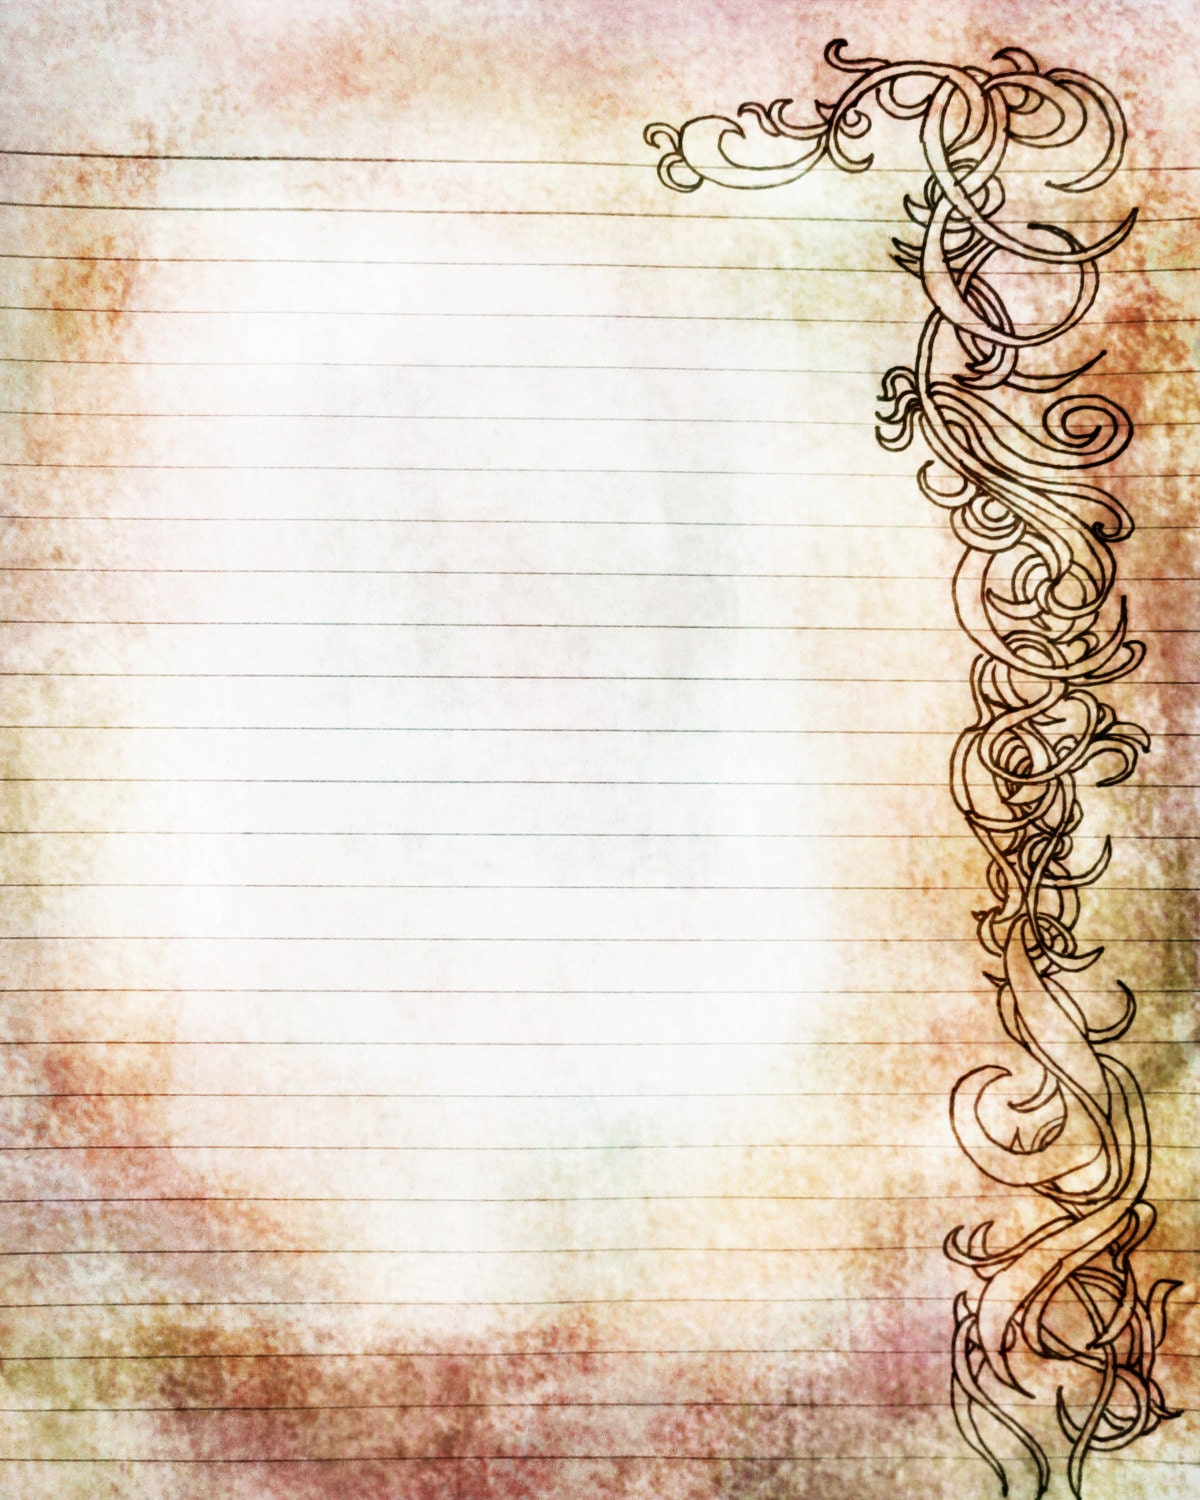 Printable Amber and Rose Colored Filigree Lined Journal Page